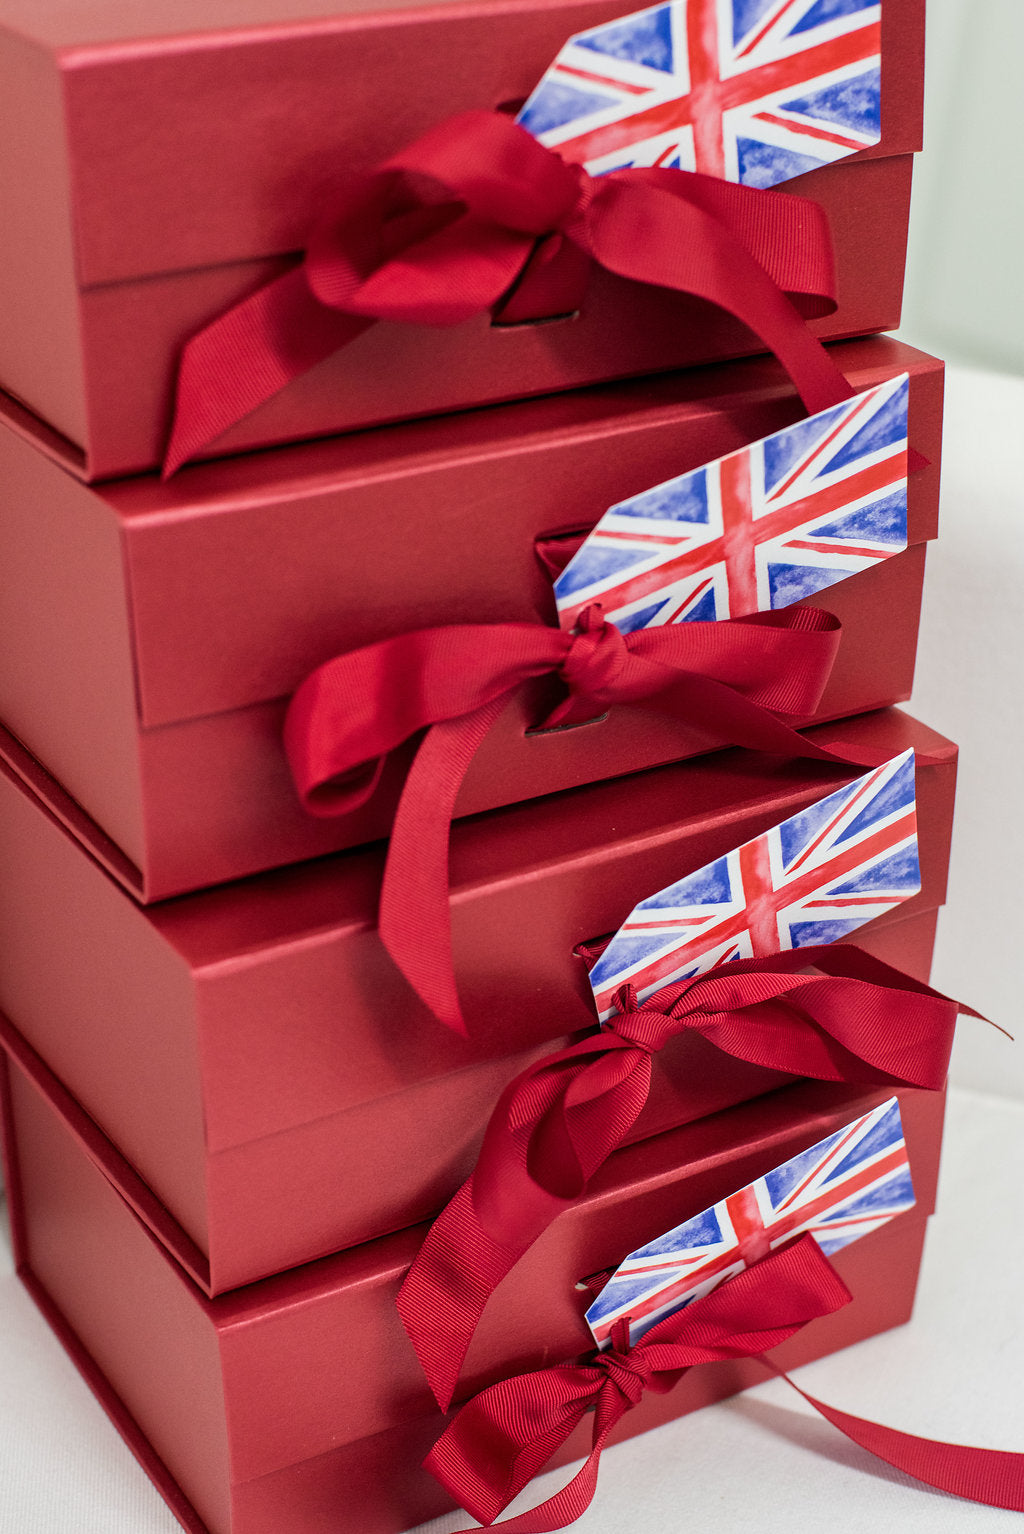 UK corporate event gift boxes